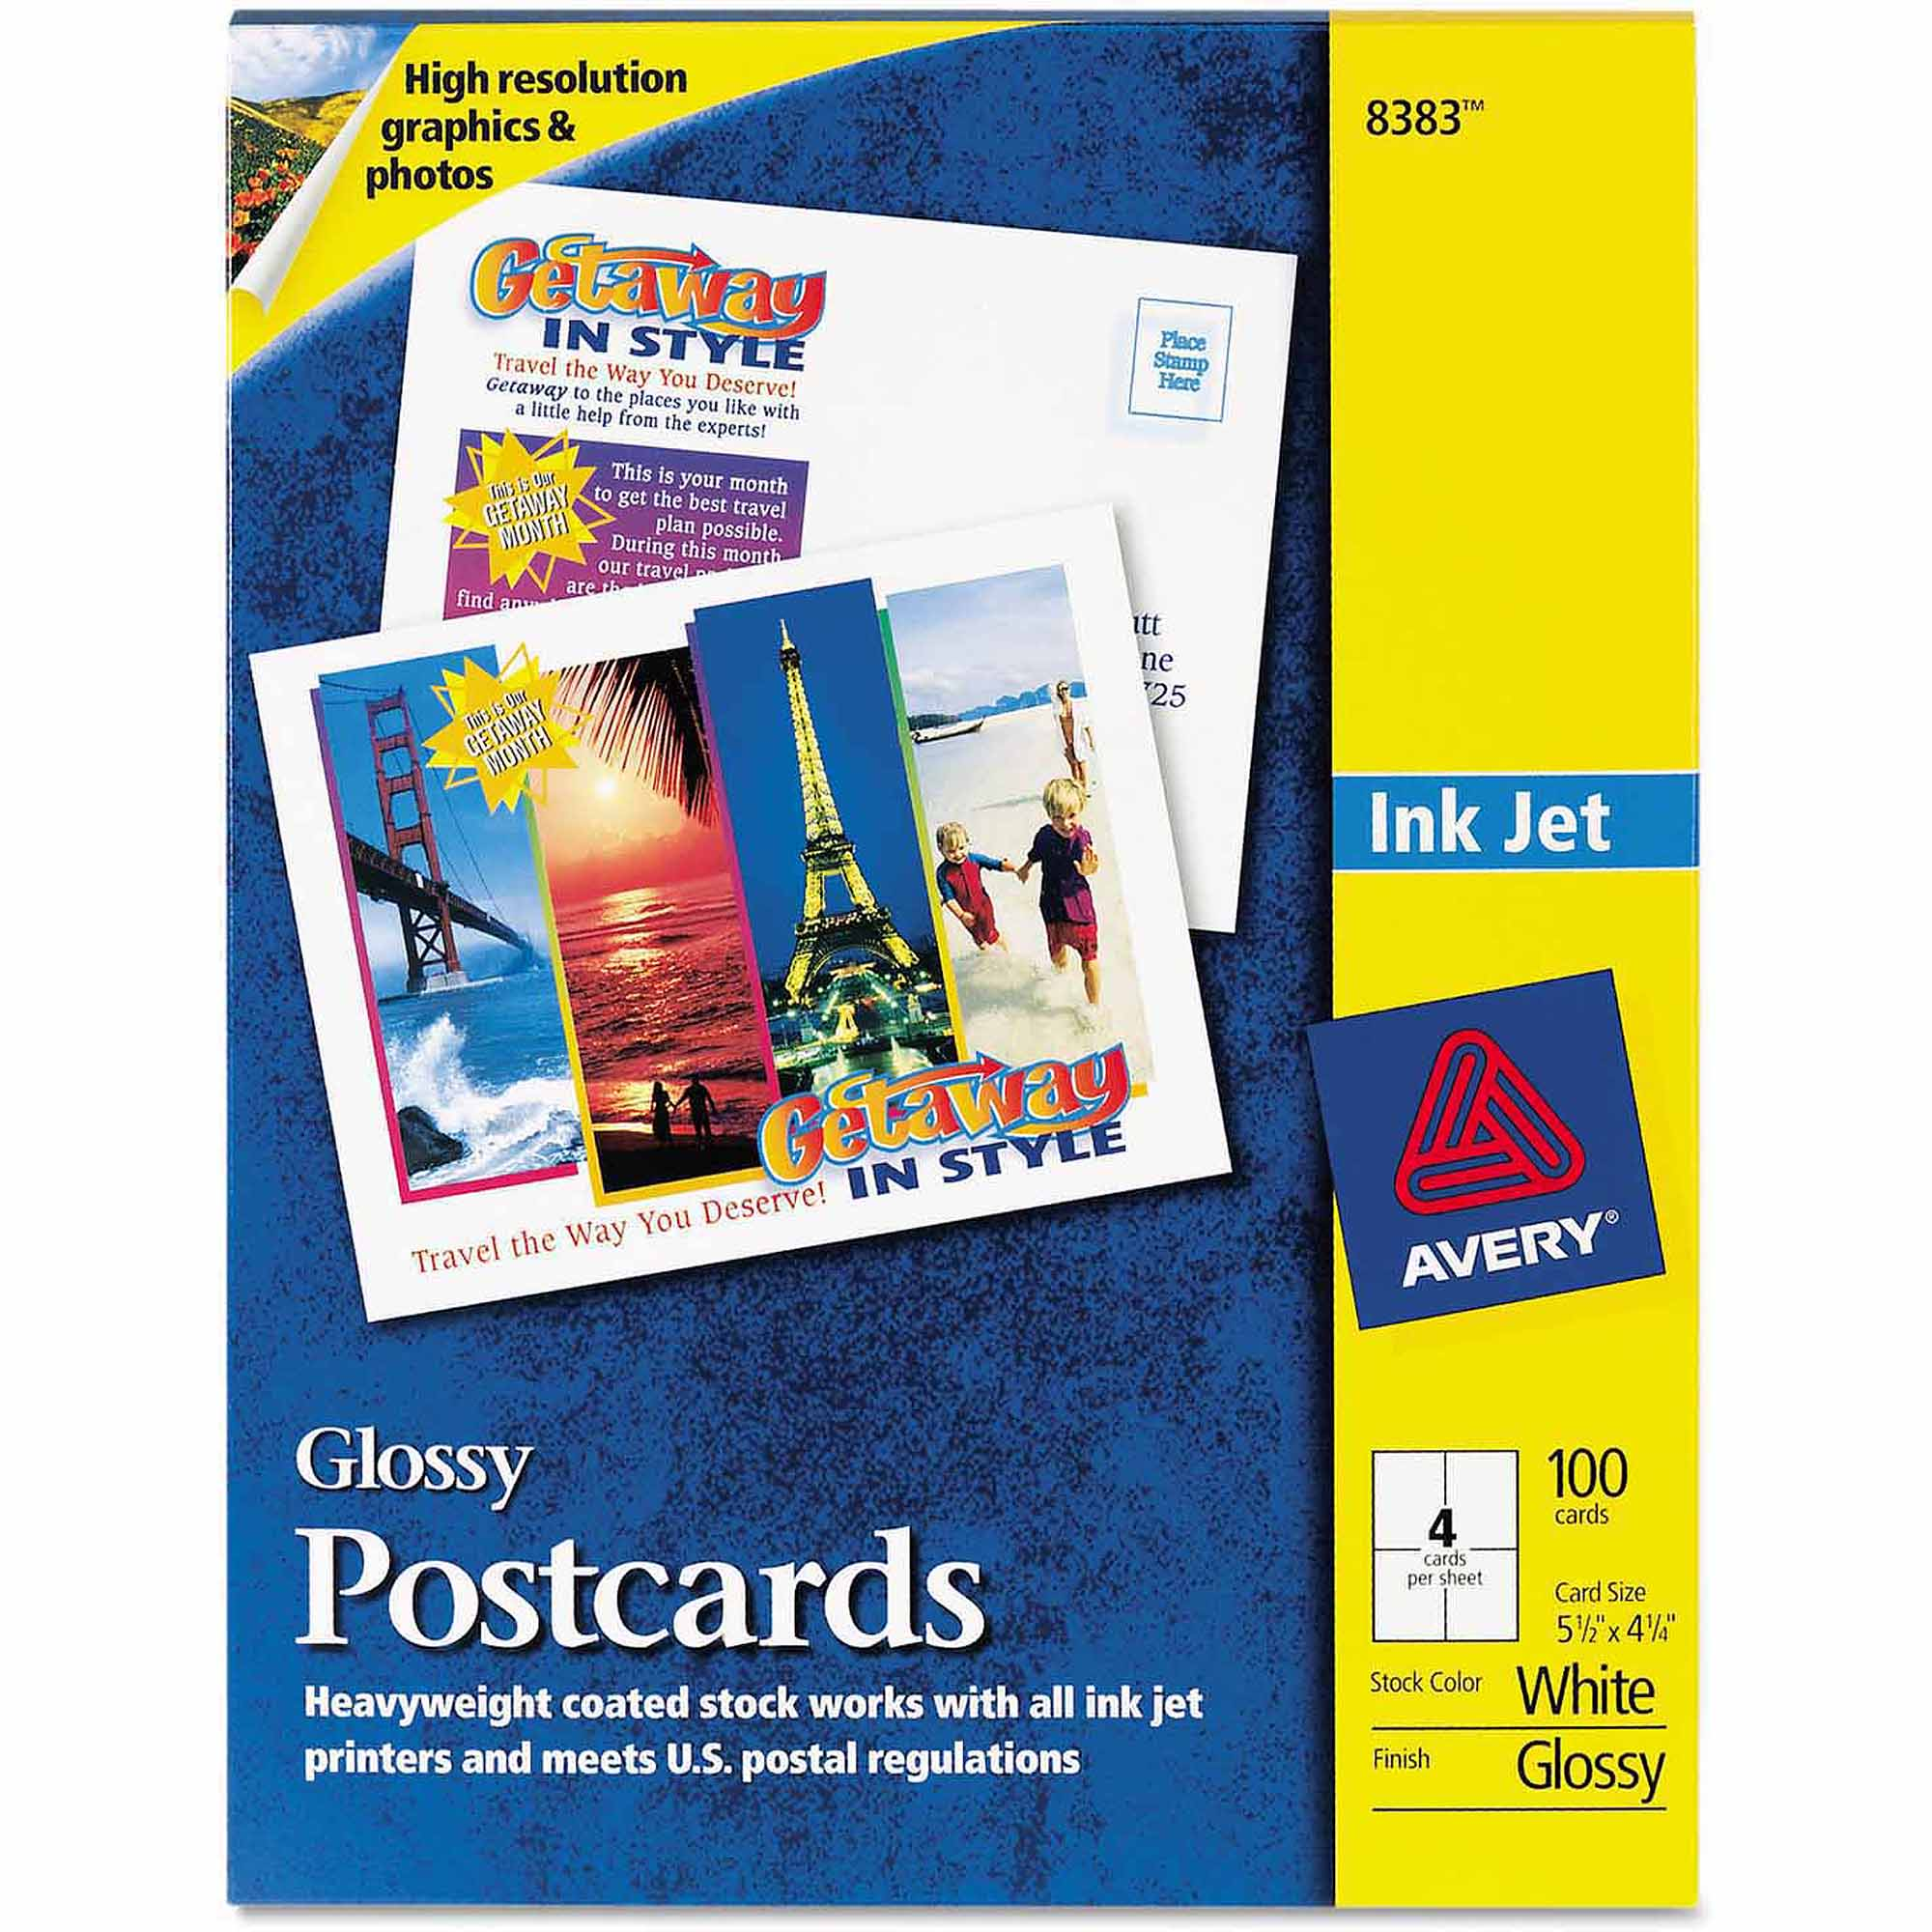 The history of postage rates in the United States, to present, as well as several notes about the addition of zip codes, postcards and a lower rate for mail heavier than one ounce. Also a few news items about the US Postal Service.